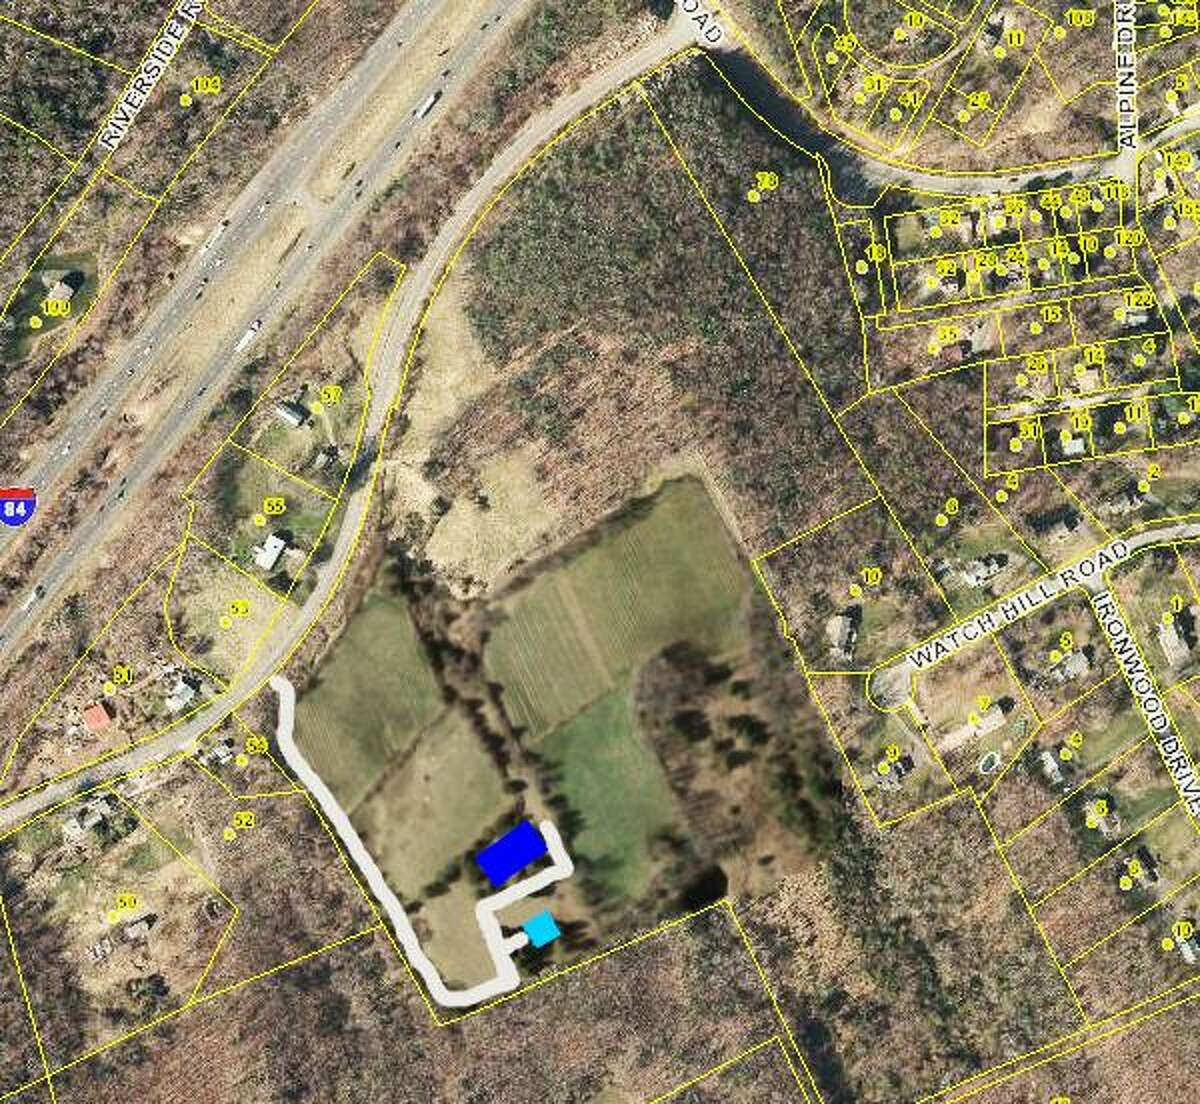 The 40 acre property at 56 Pole Bridge Road, west of Sandy Hook, where a single-family home and a winery are proposed.